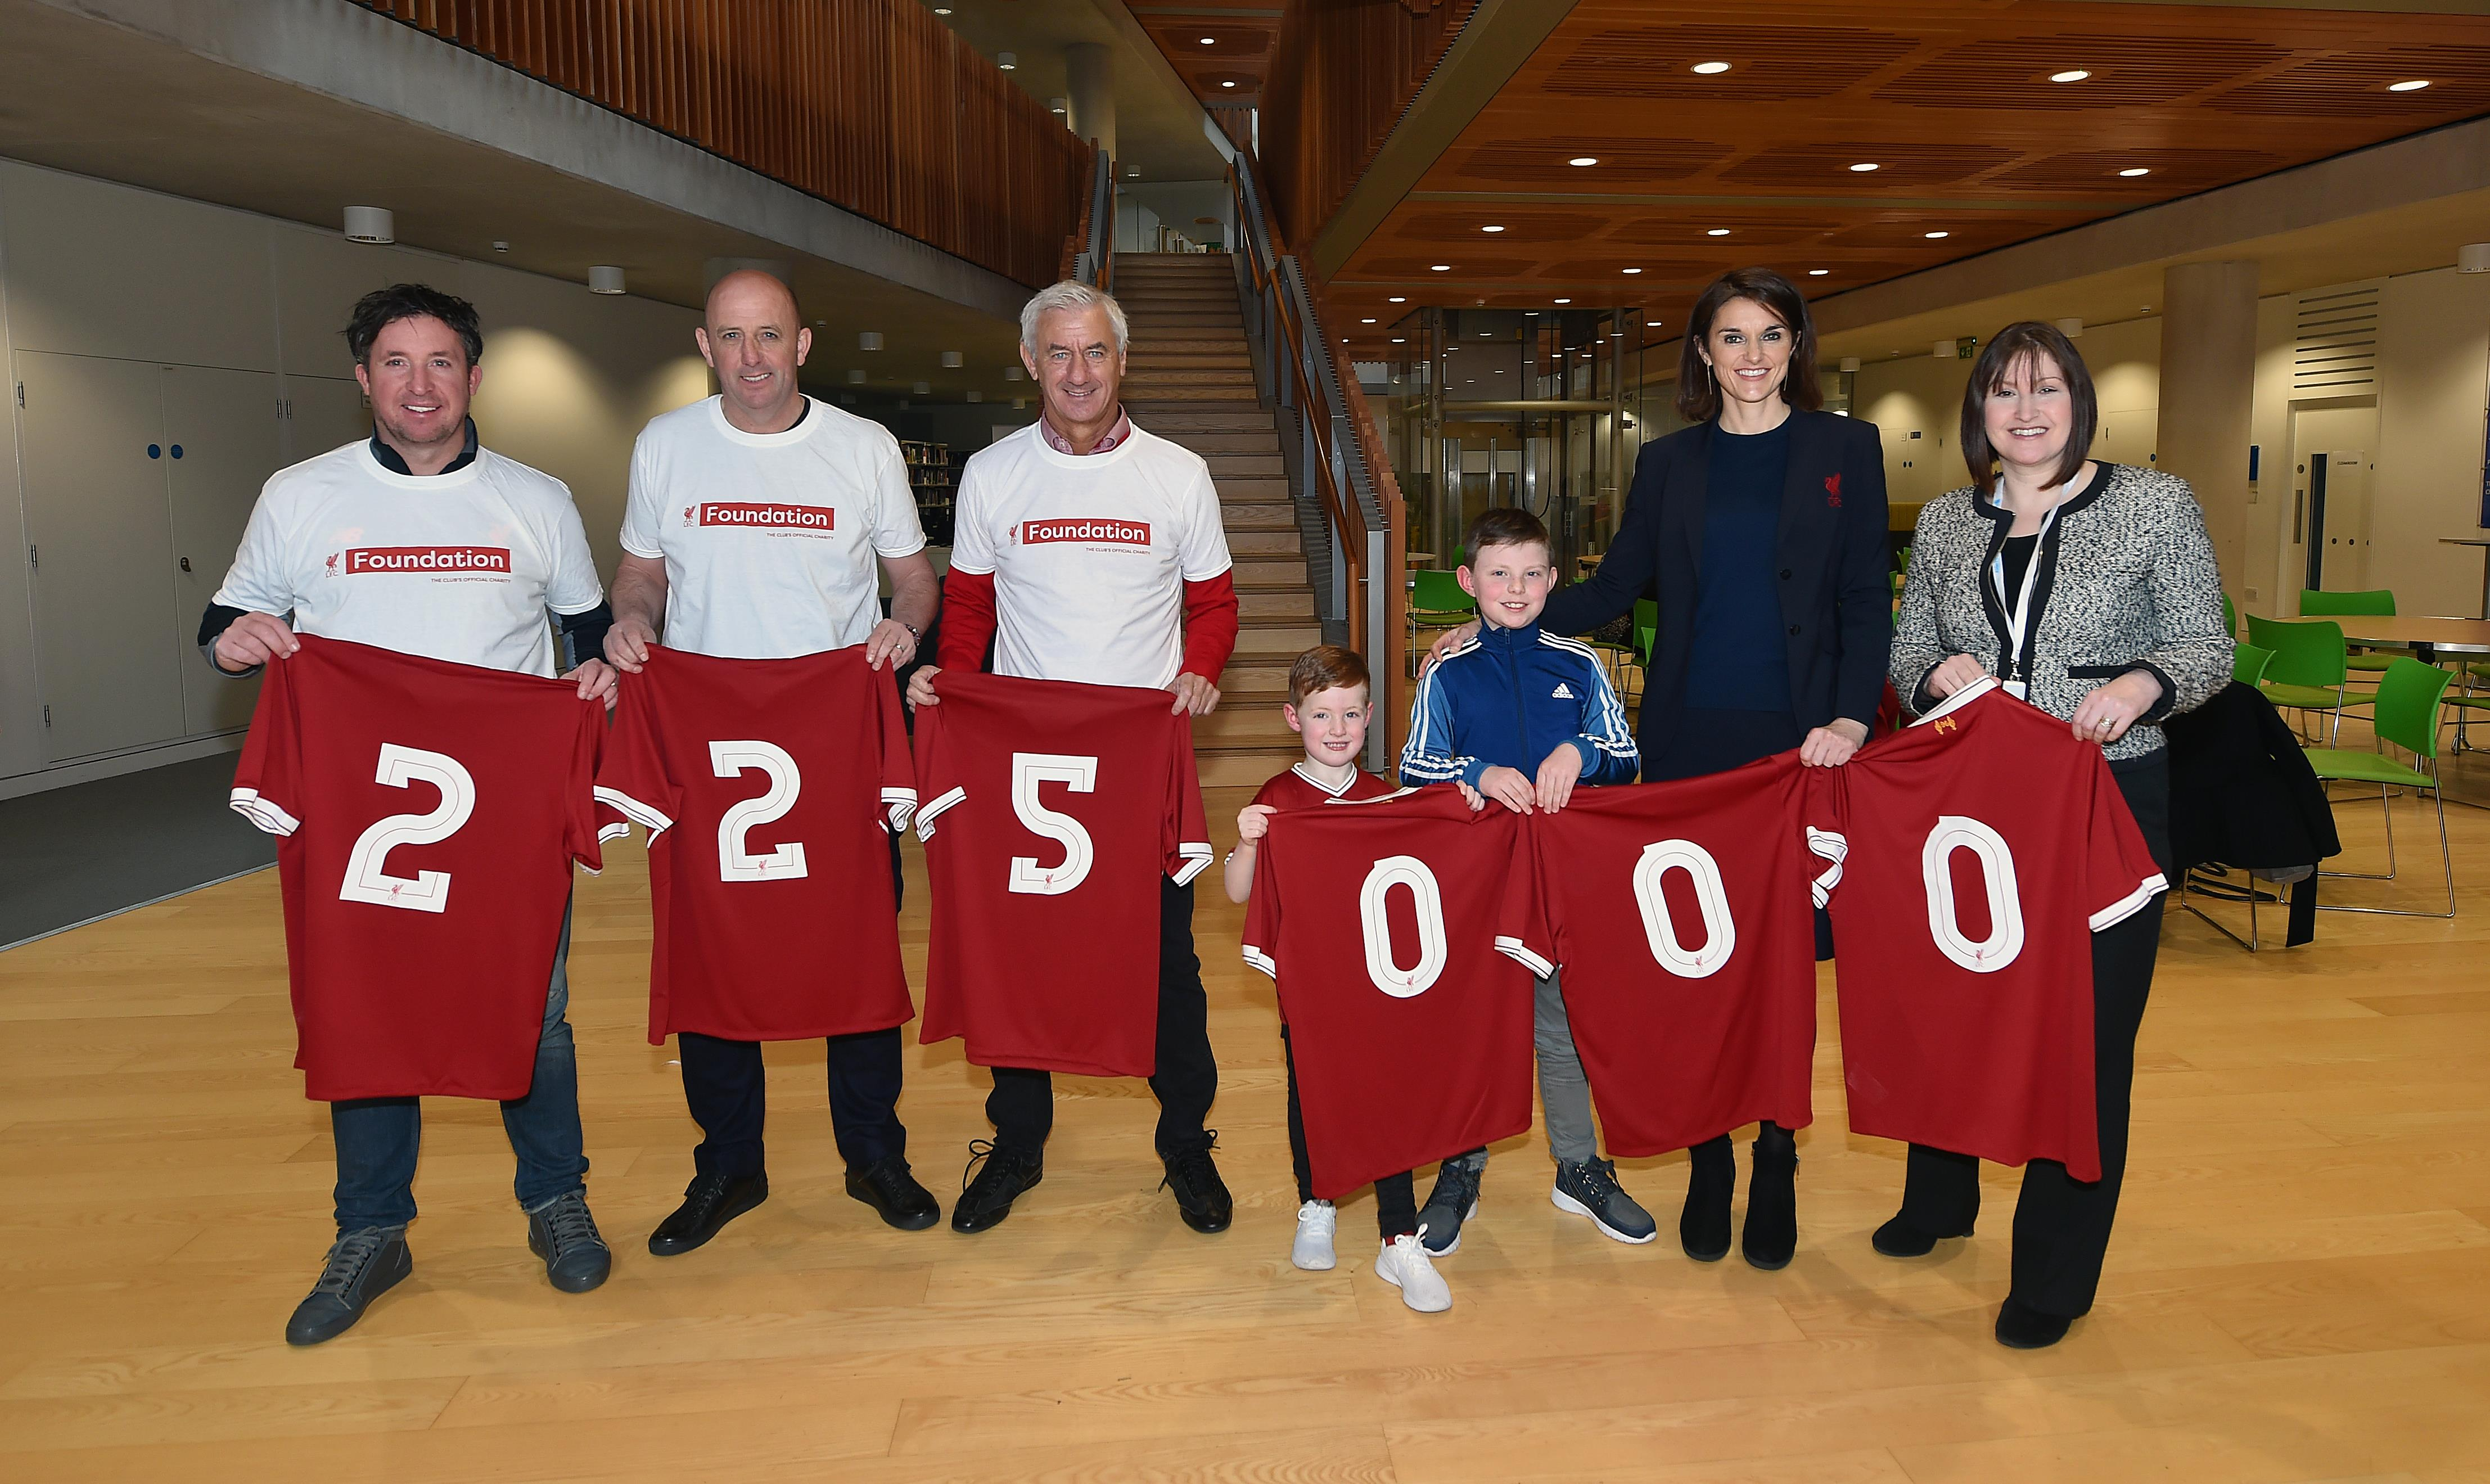 LFC Foundation donates £225,000